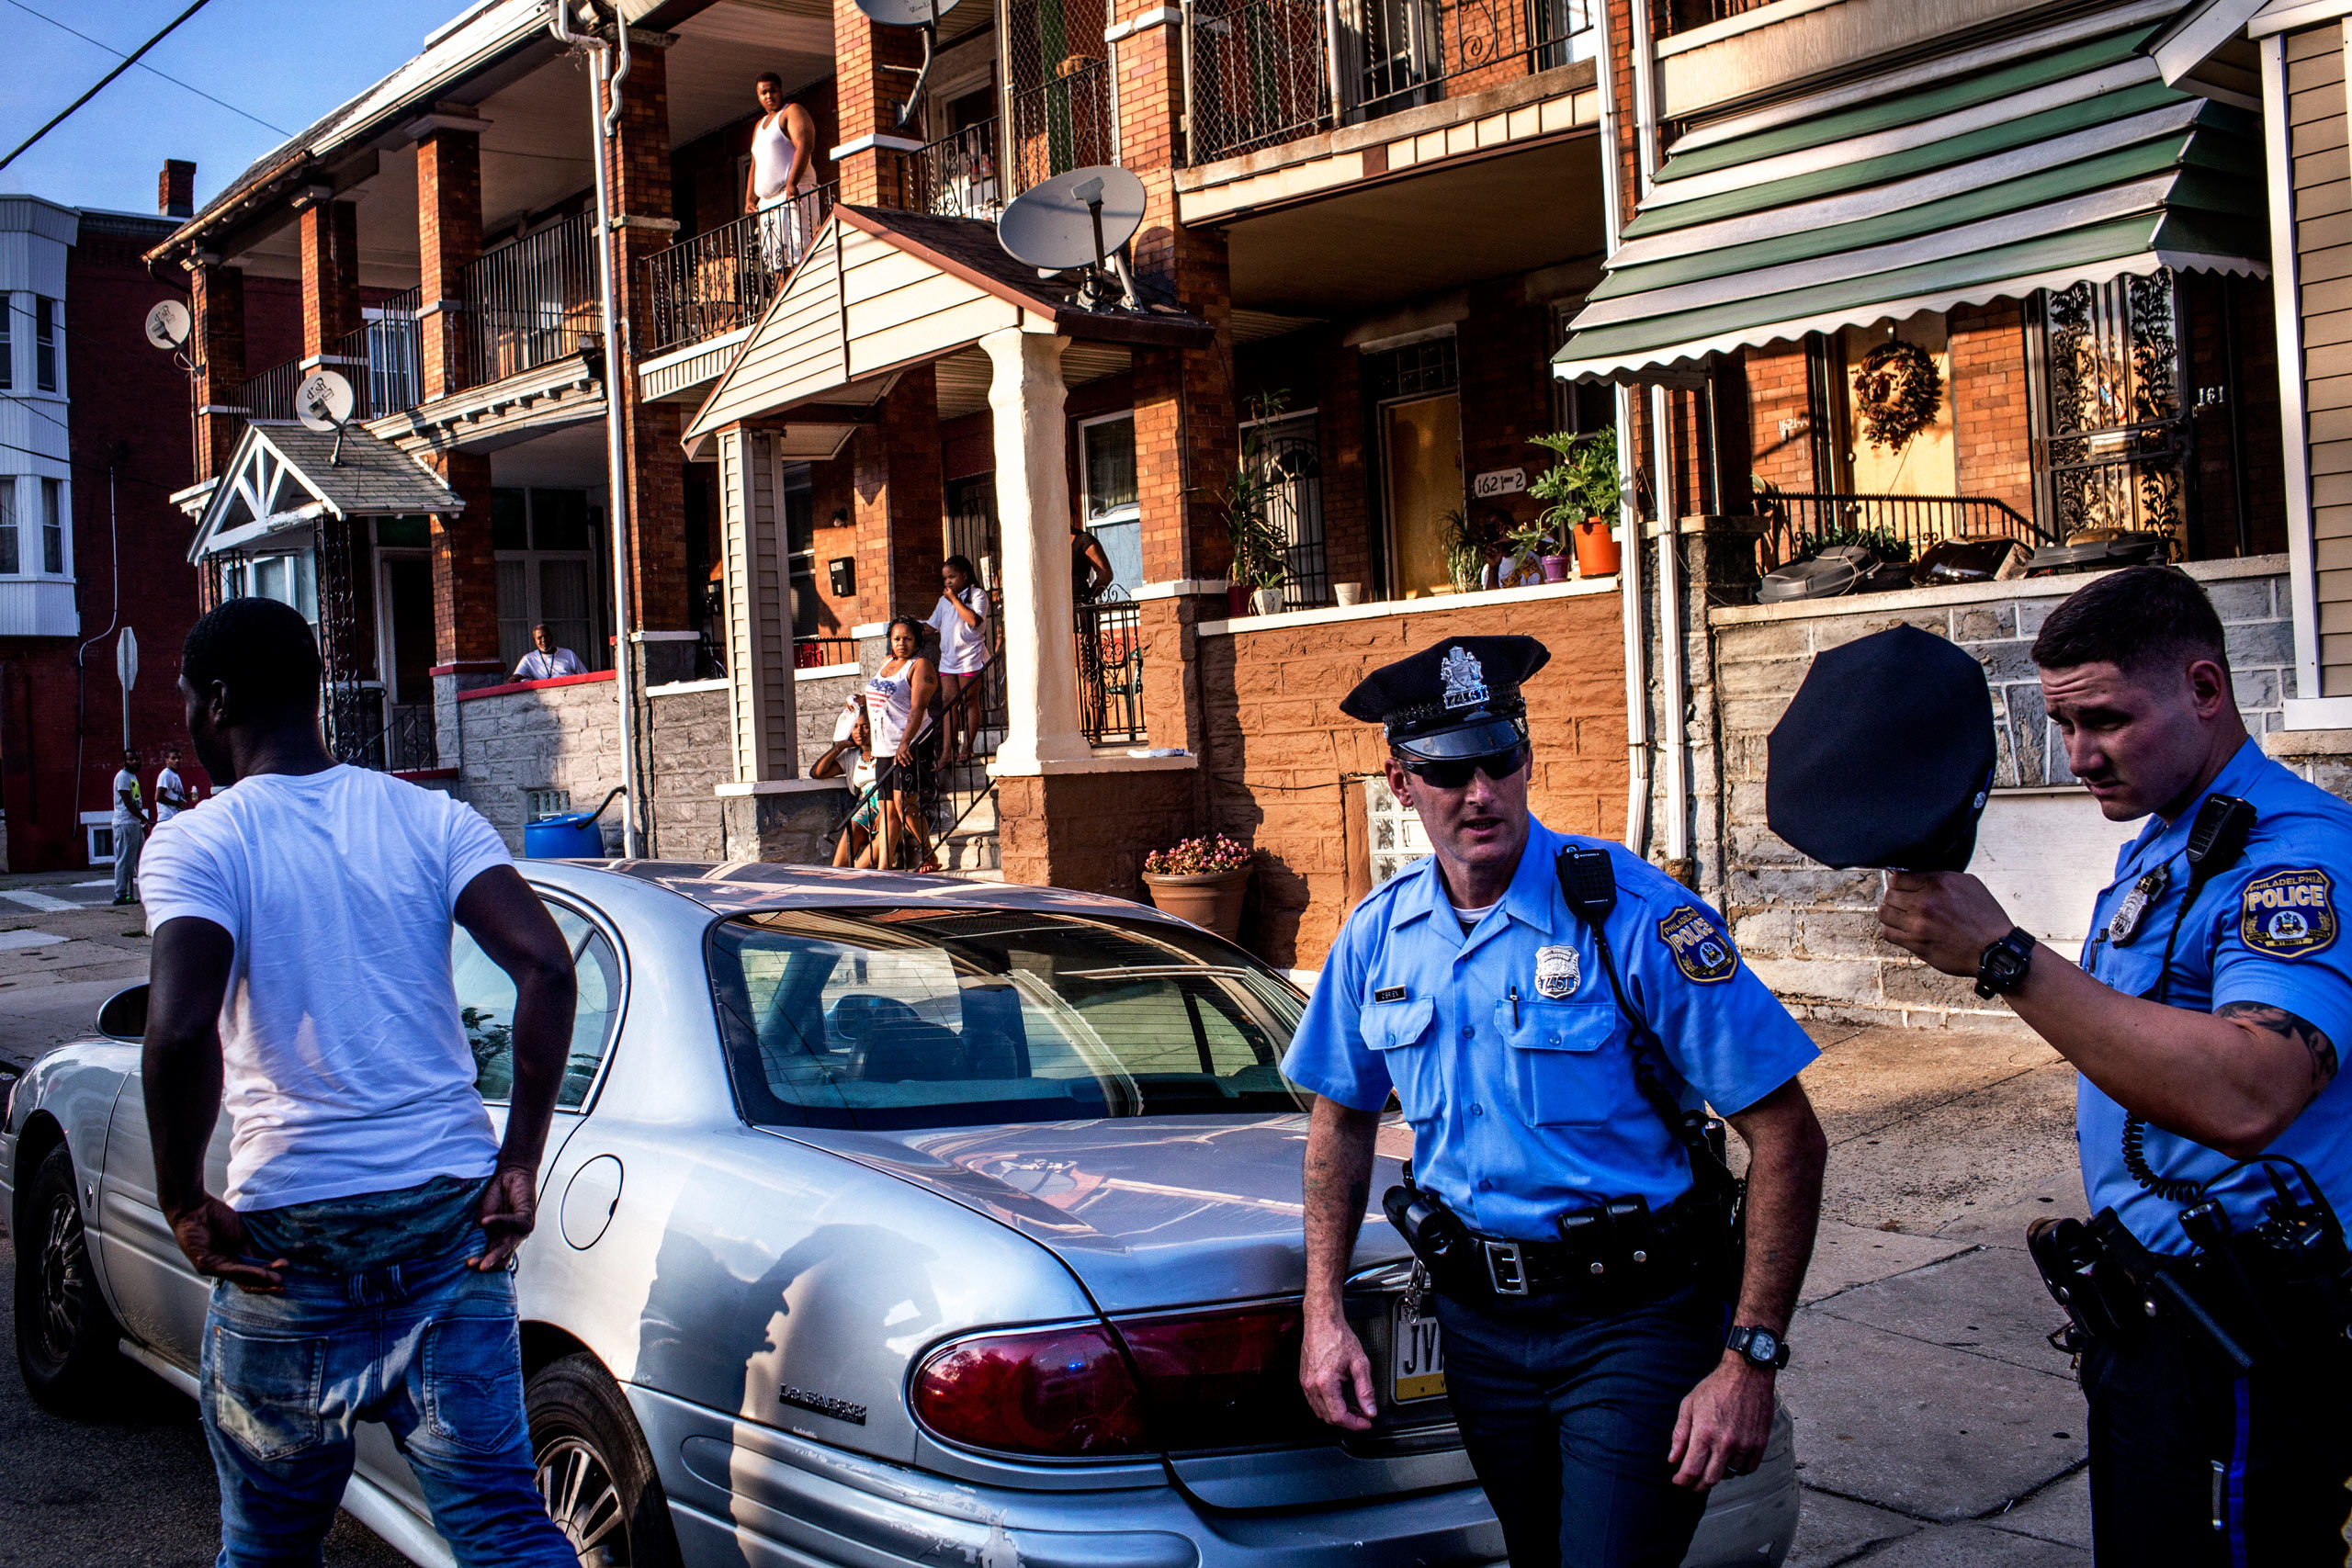 Officers Paul Watson, right, and his partner Officer Richard O'Brien make a traffic stop as neighbors look on. After the police searched his car, the man was released. July 29, 2015. Philadelphia, Pa.